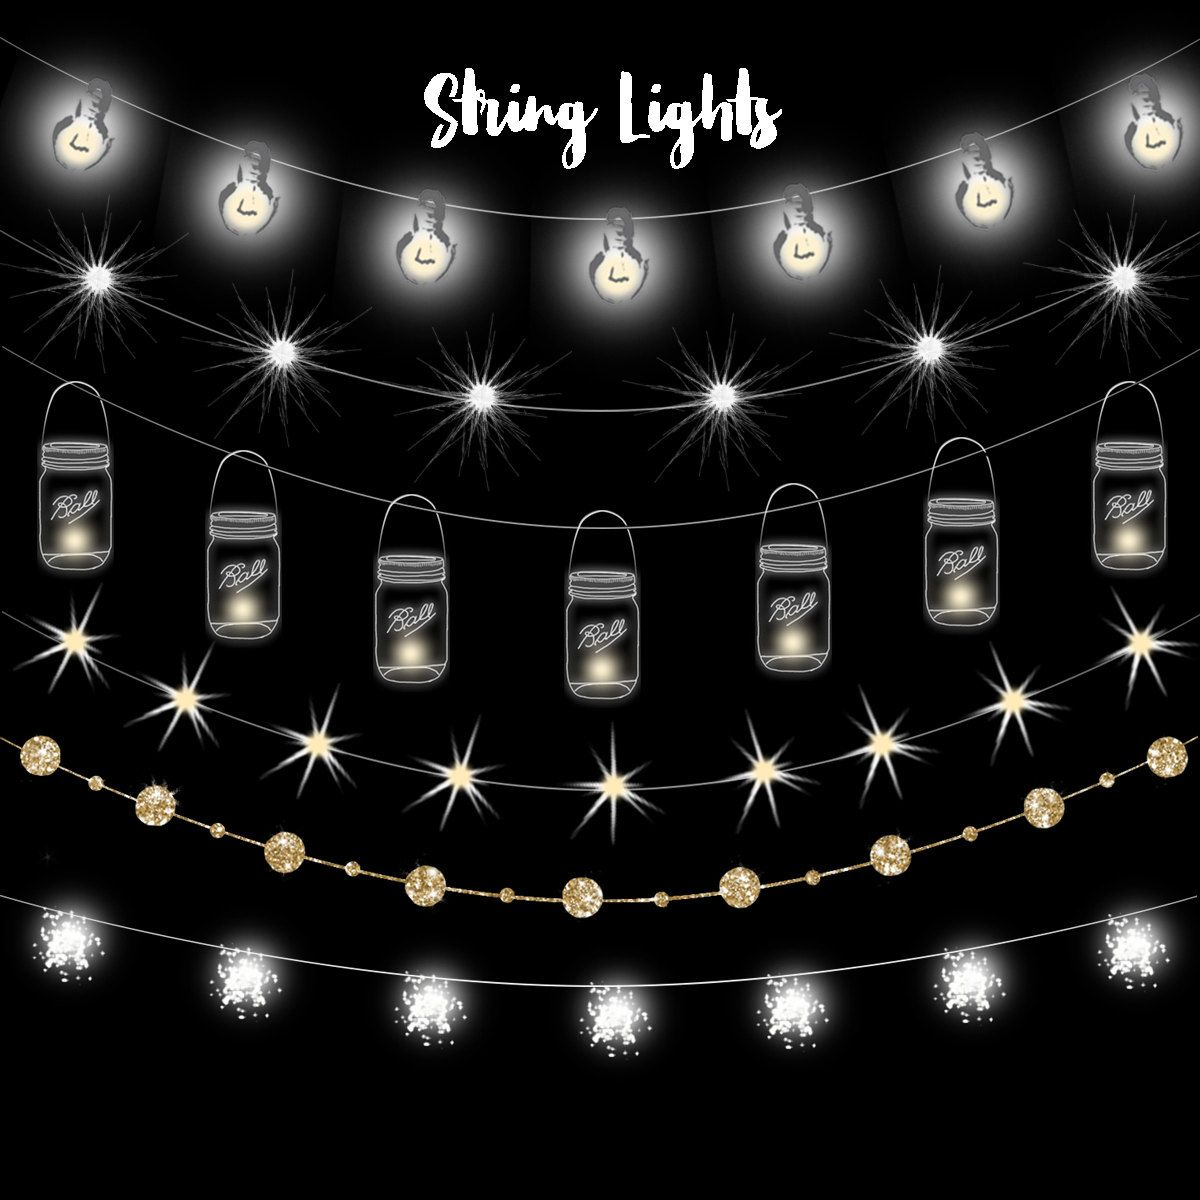 String Lights Clipart Endearing String Lights Clipart Fairy Lights Clipart Party Lights Clipart Design Decoration